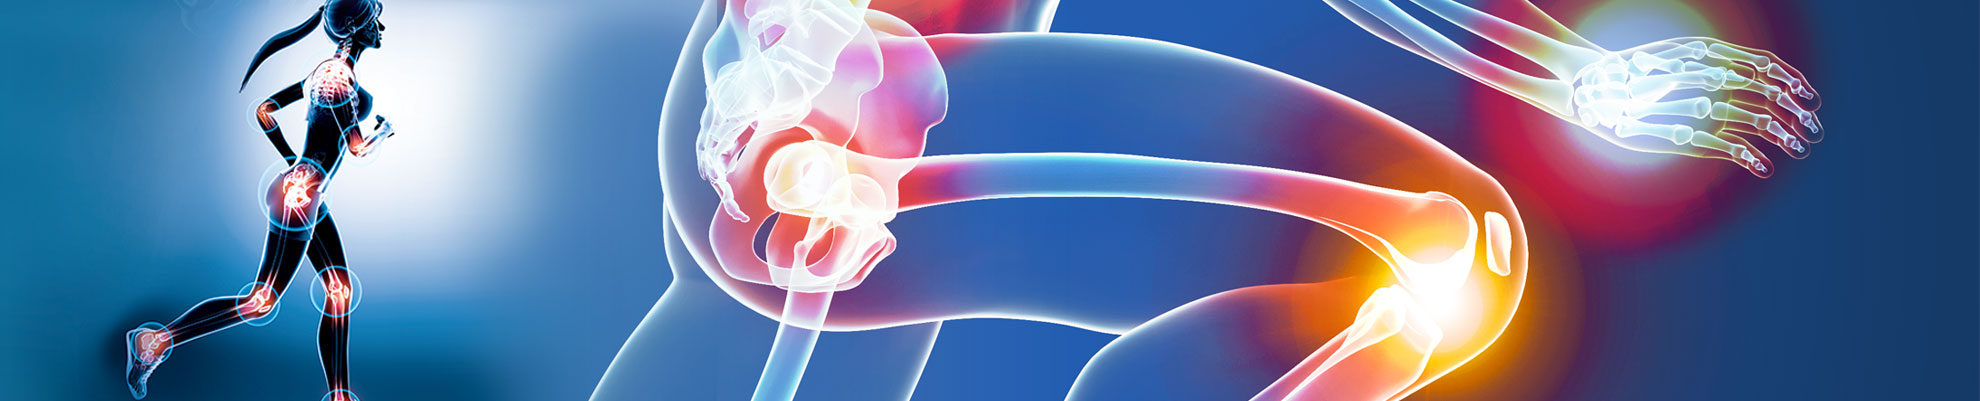 IBSA pain and inflammation dolore e infiammazione